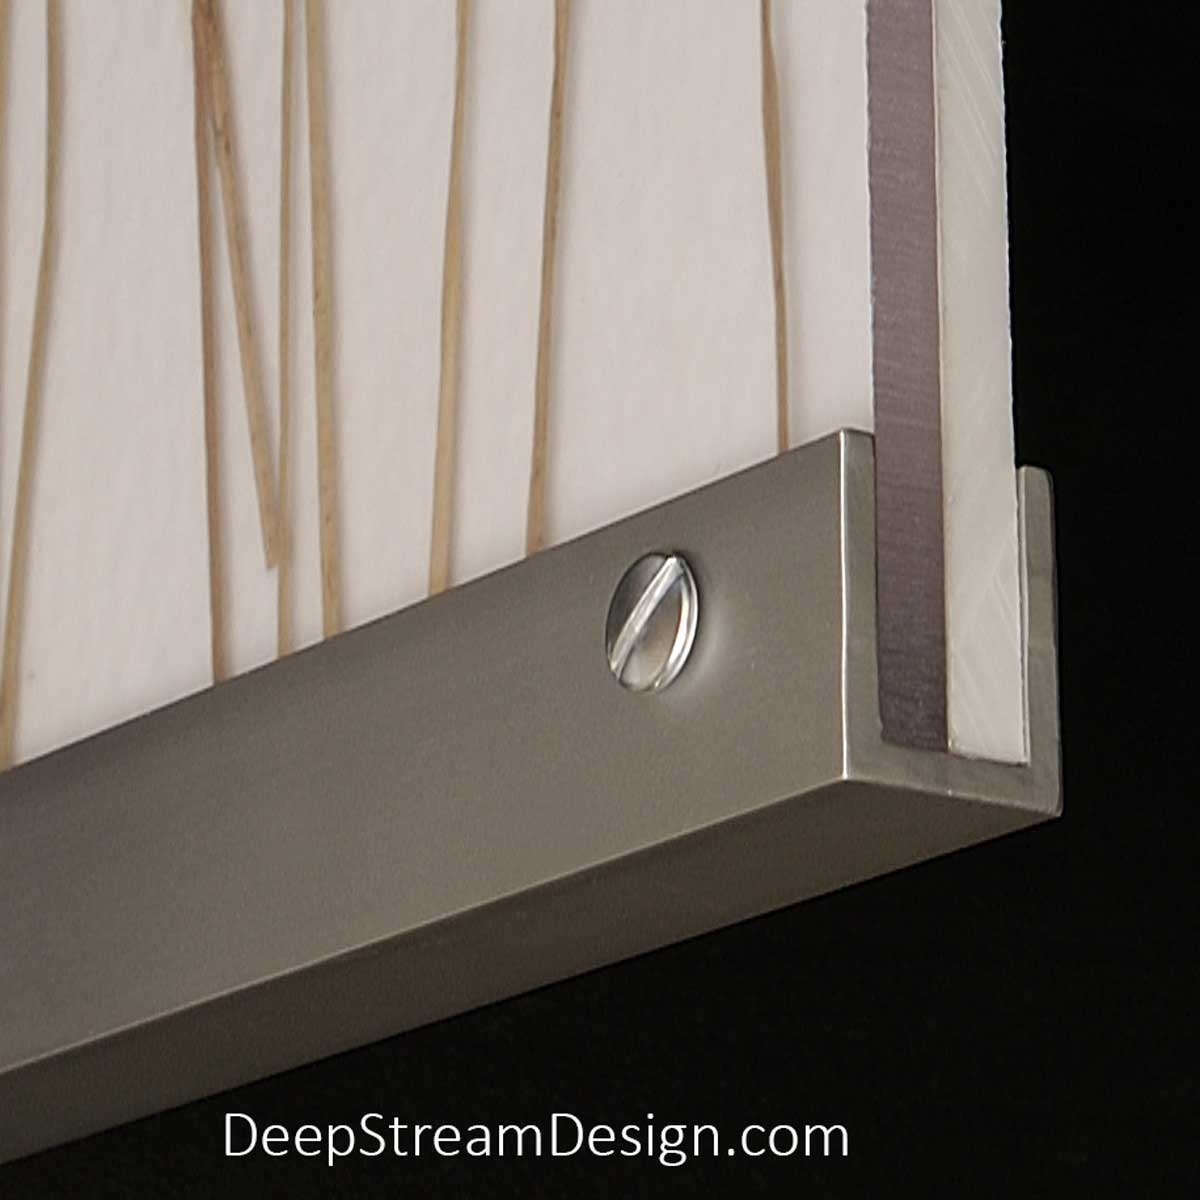 A Studio photo of a proprietary Audubon Aluminum Frame System U-channel creating a composite panel combining an expensive 3form Eco-resin panel with an inexpensive white panel in the background.